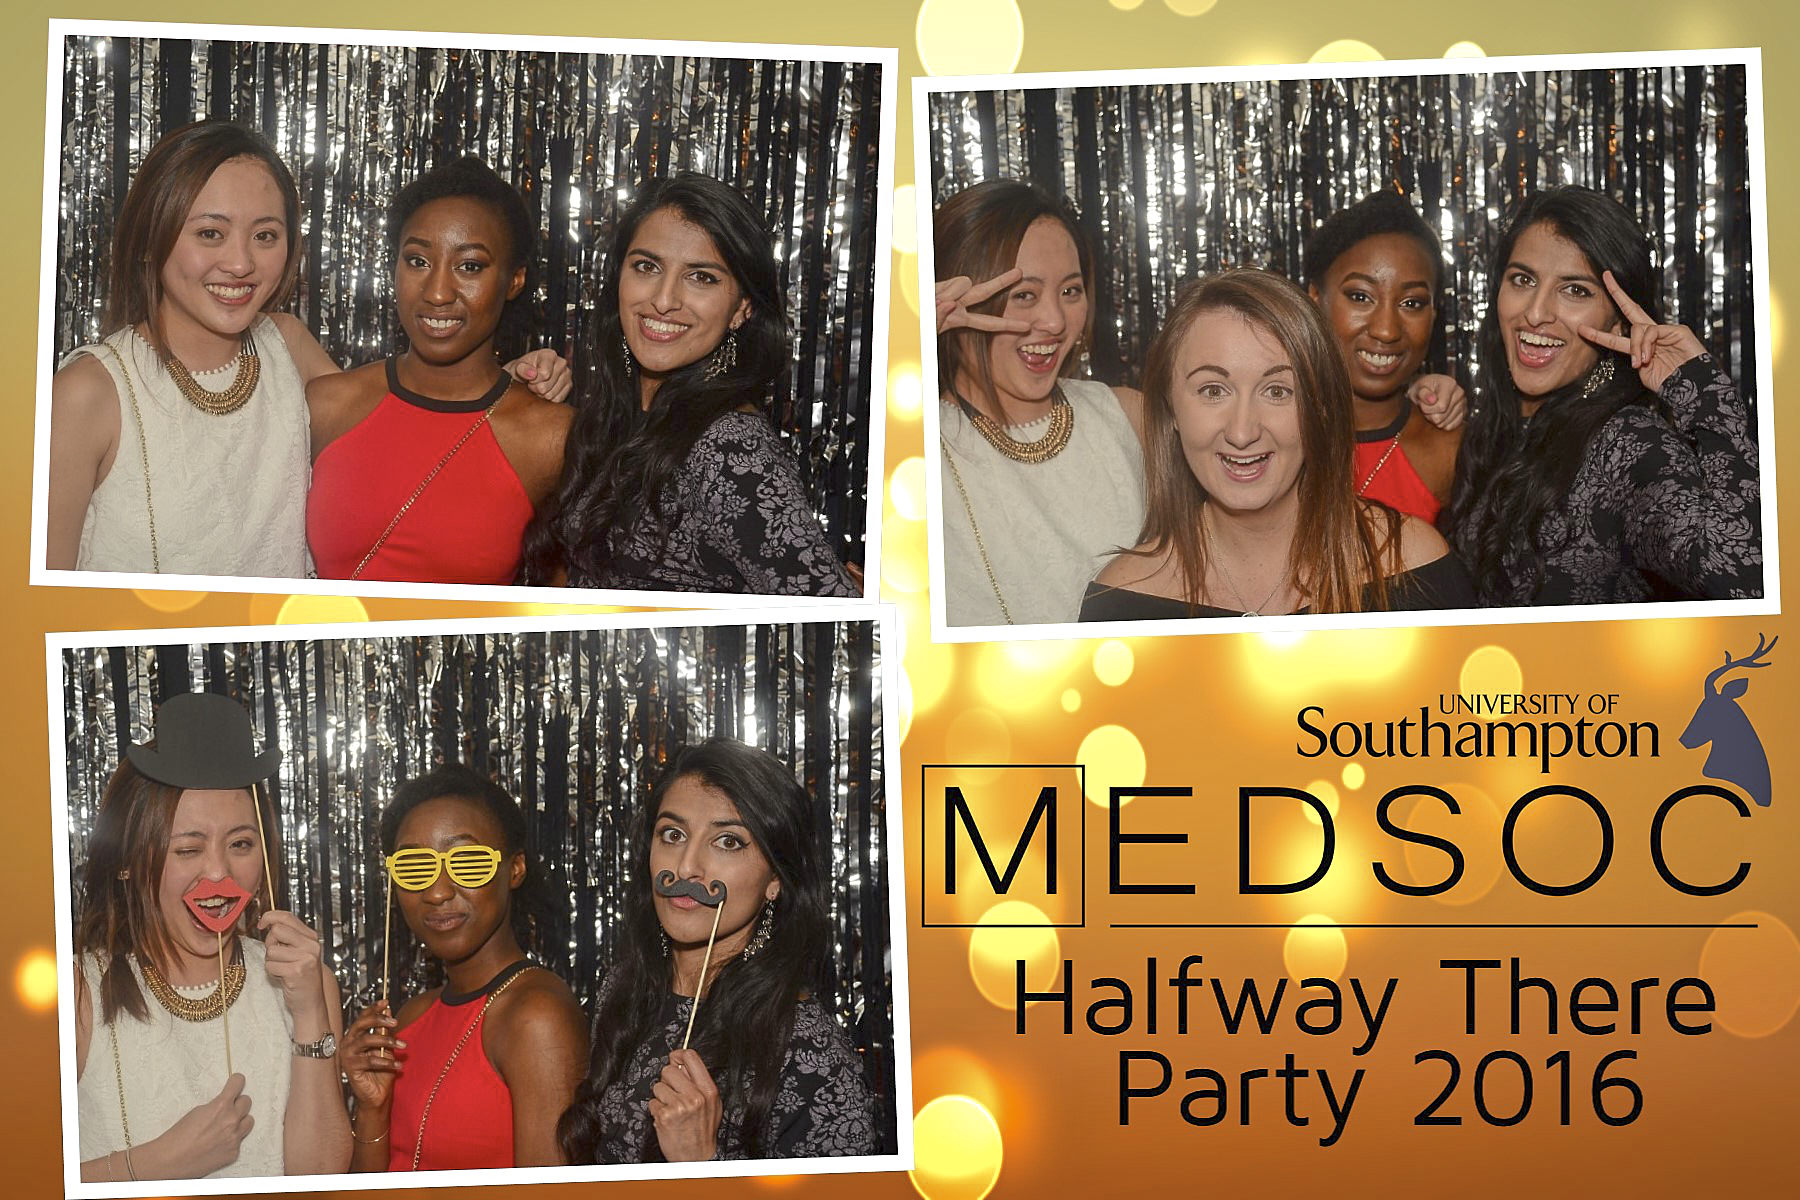 MedSoc Halfway There Party 2016 DS000413.jpg